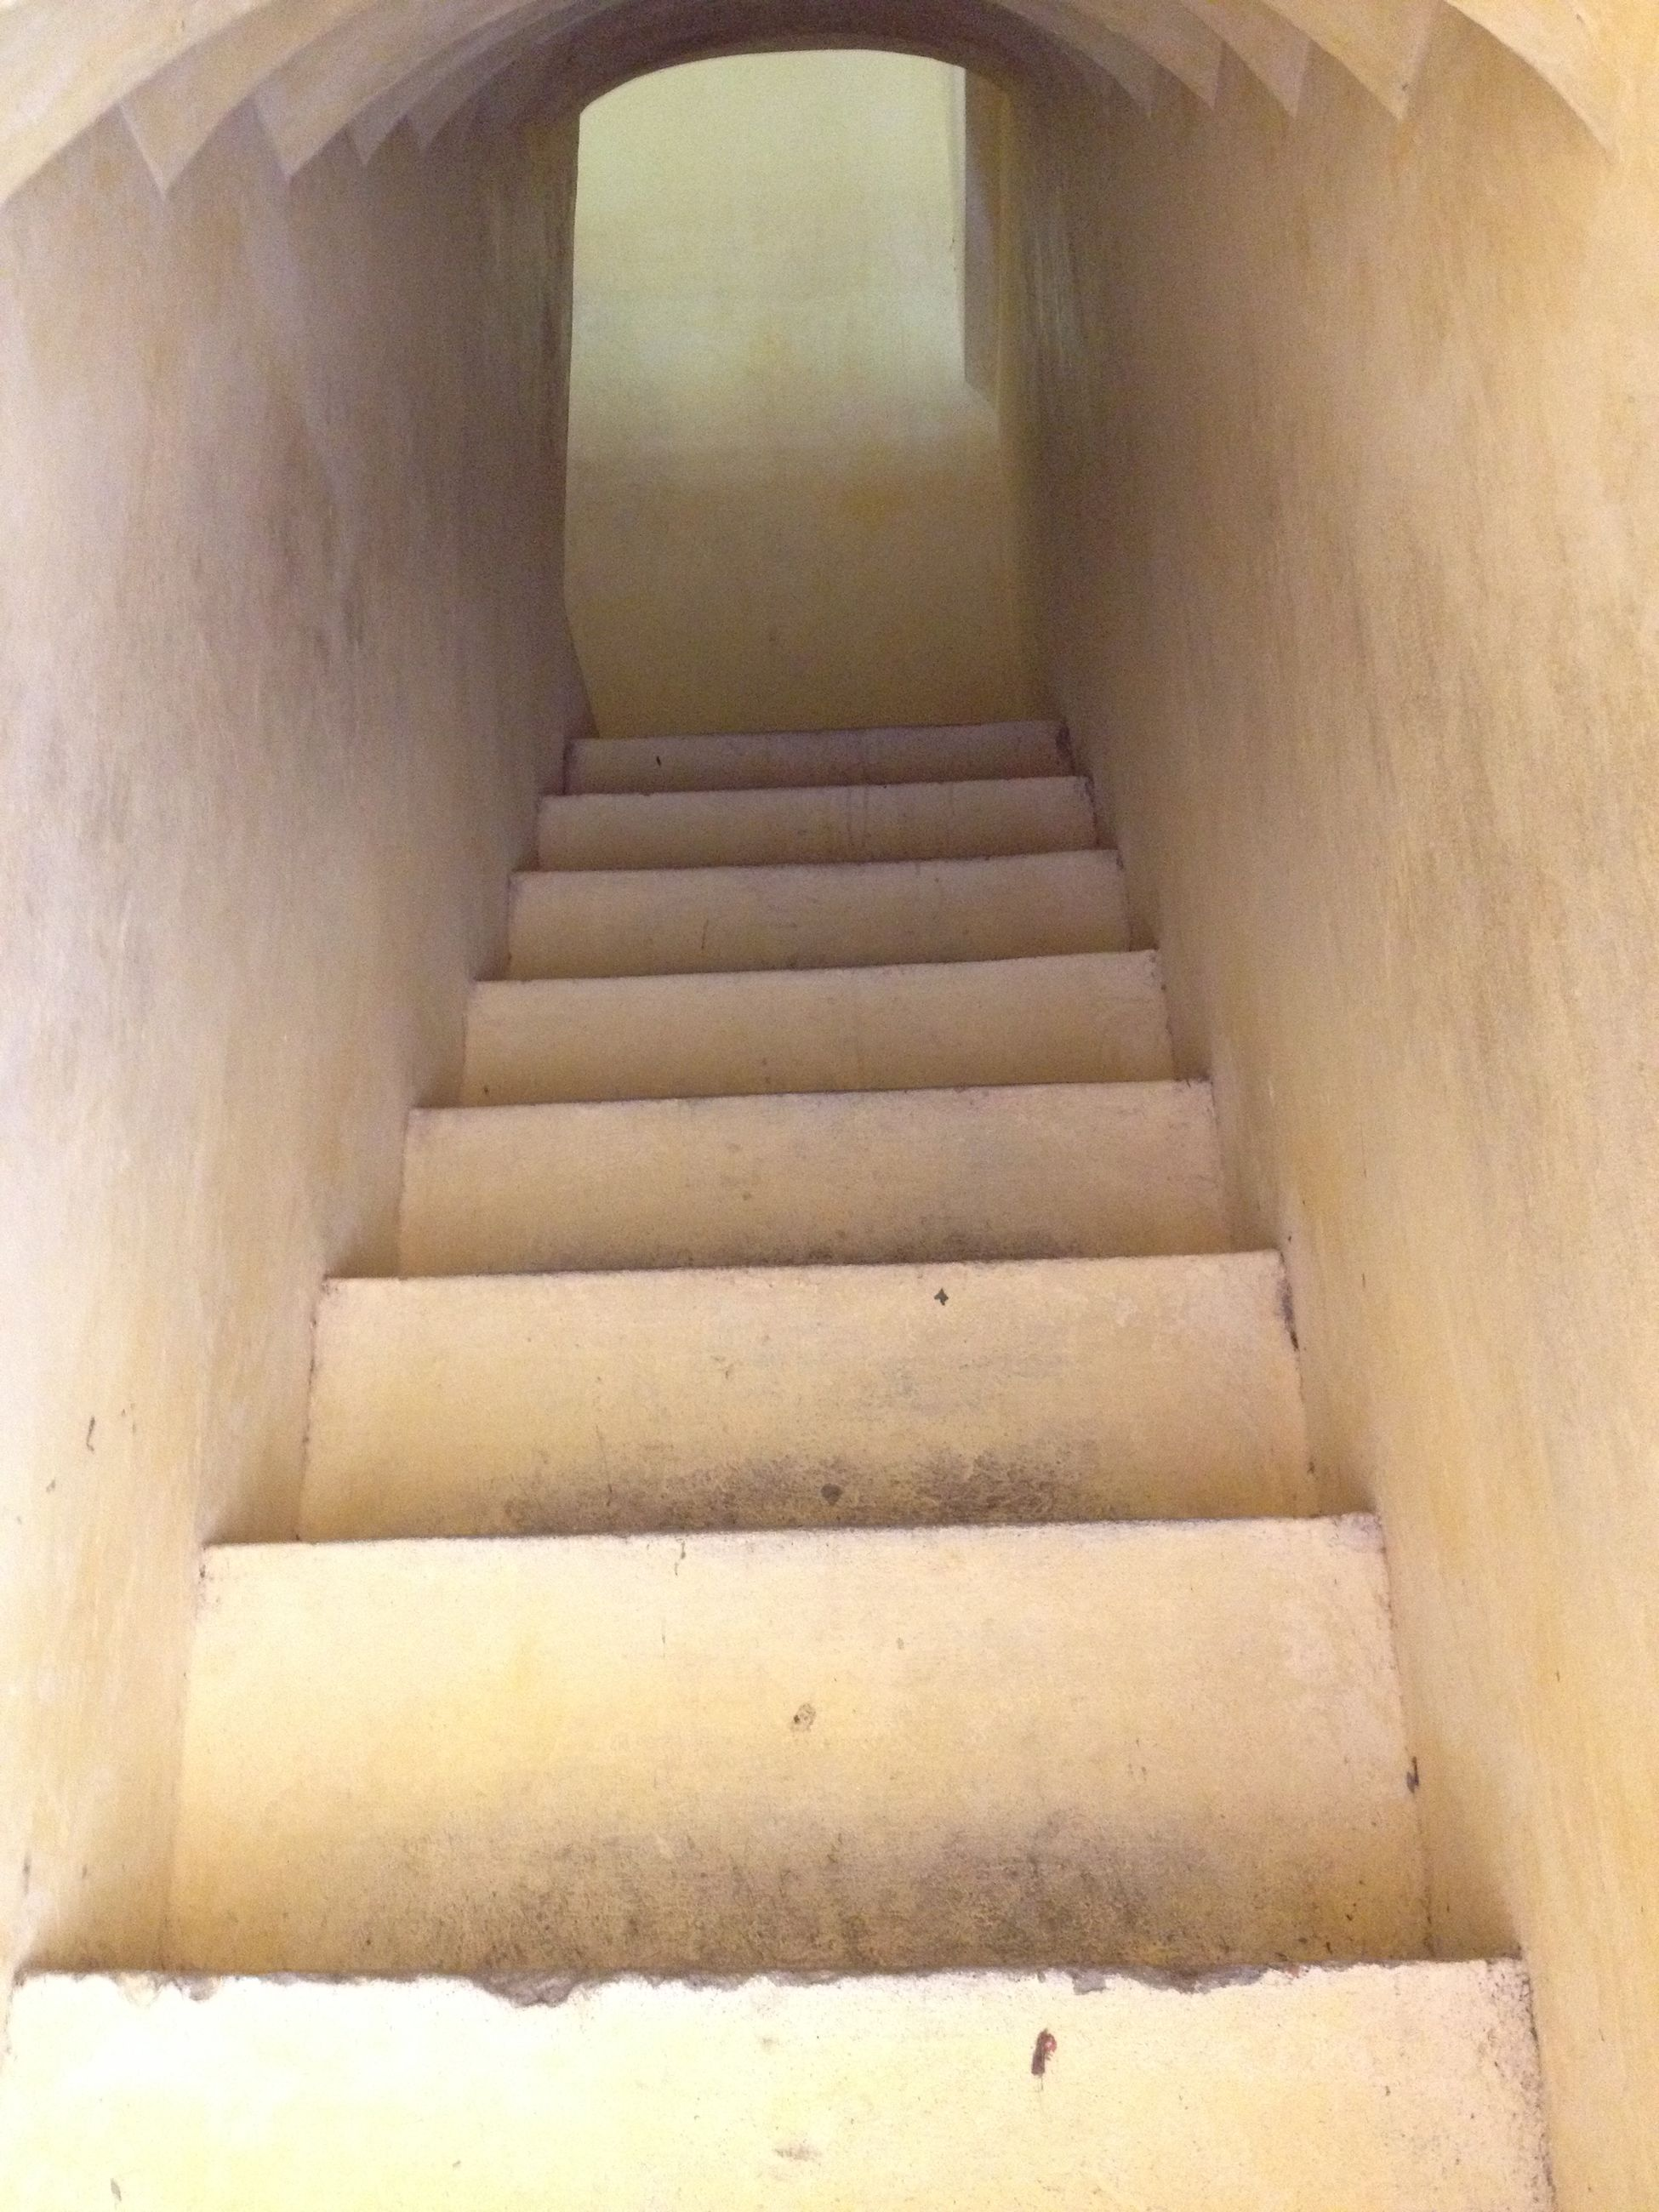 architecture, built structure, indoors, wall - building feature, corridor, wall, building, the way forward, steps, building exterior, in a row, steps and staircases, staircase, diminishing perspective, sunlight, no people, narrow, day, old, absence